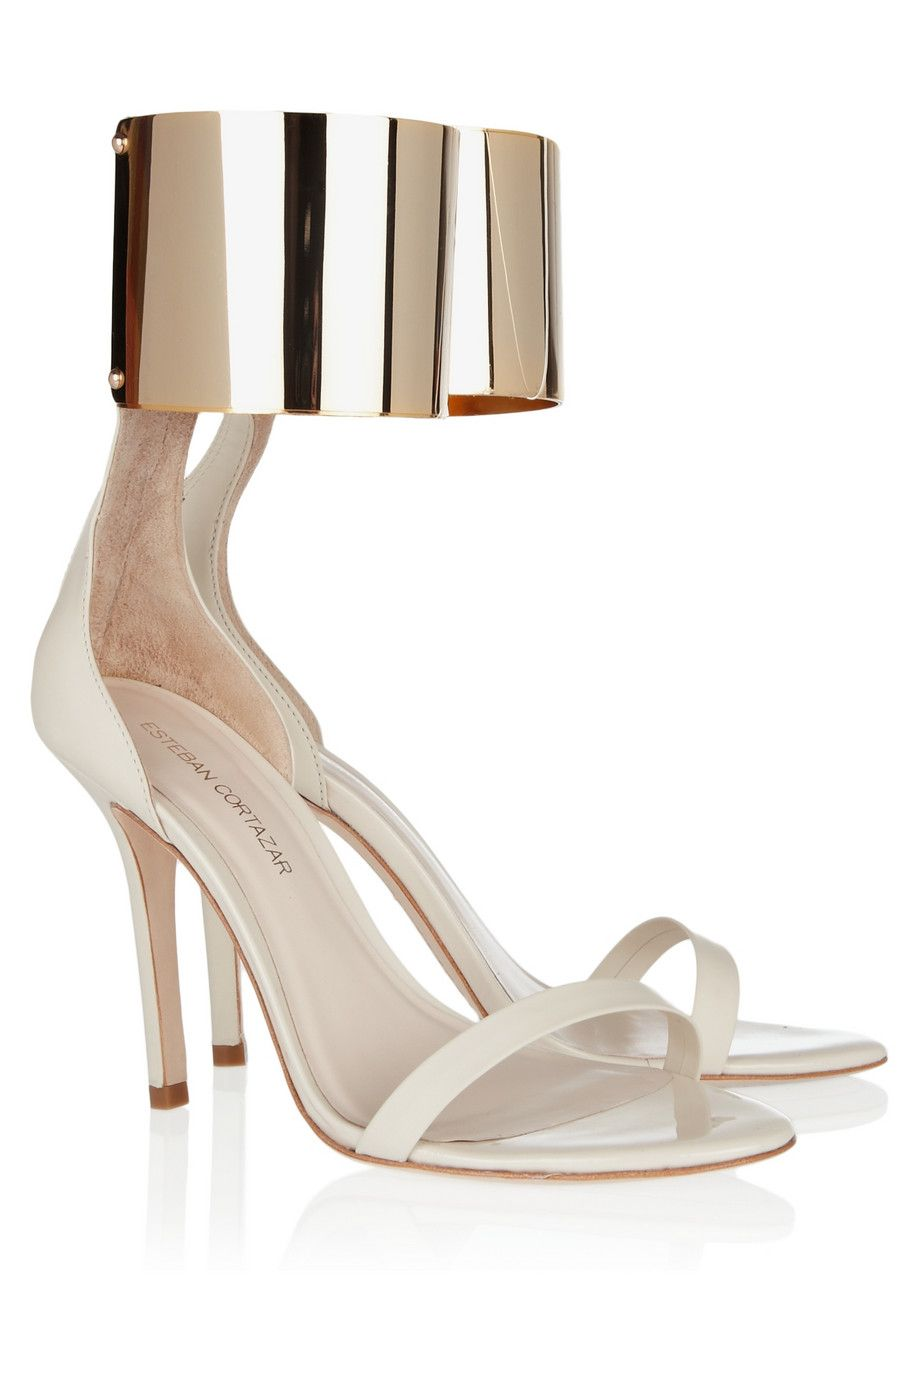 Esteban Cortazar Metal ankle-cuff leather sandals  The Lust